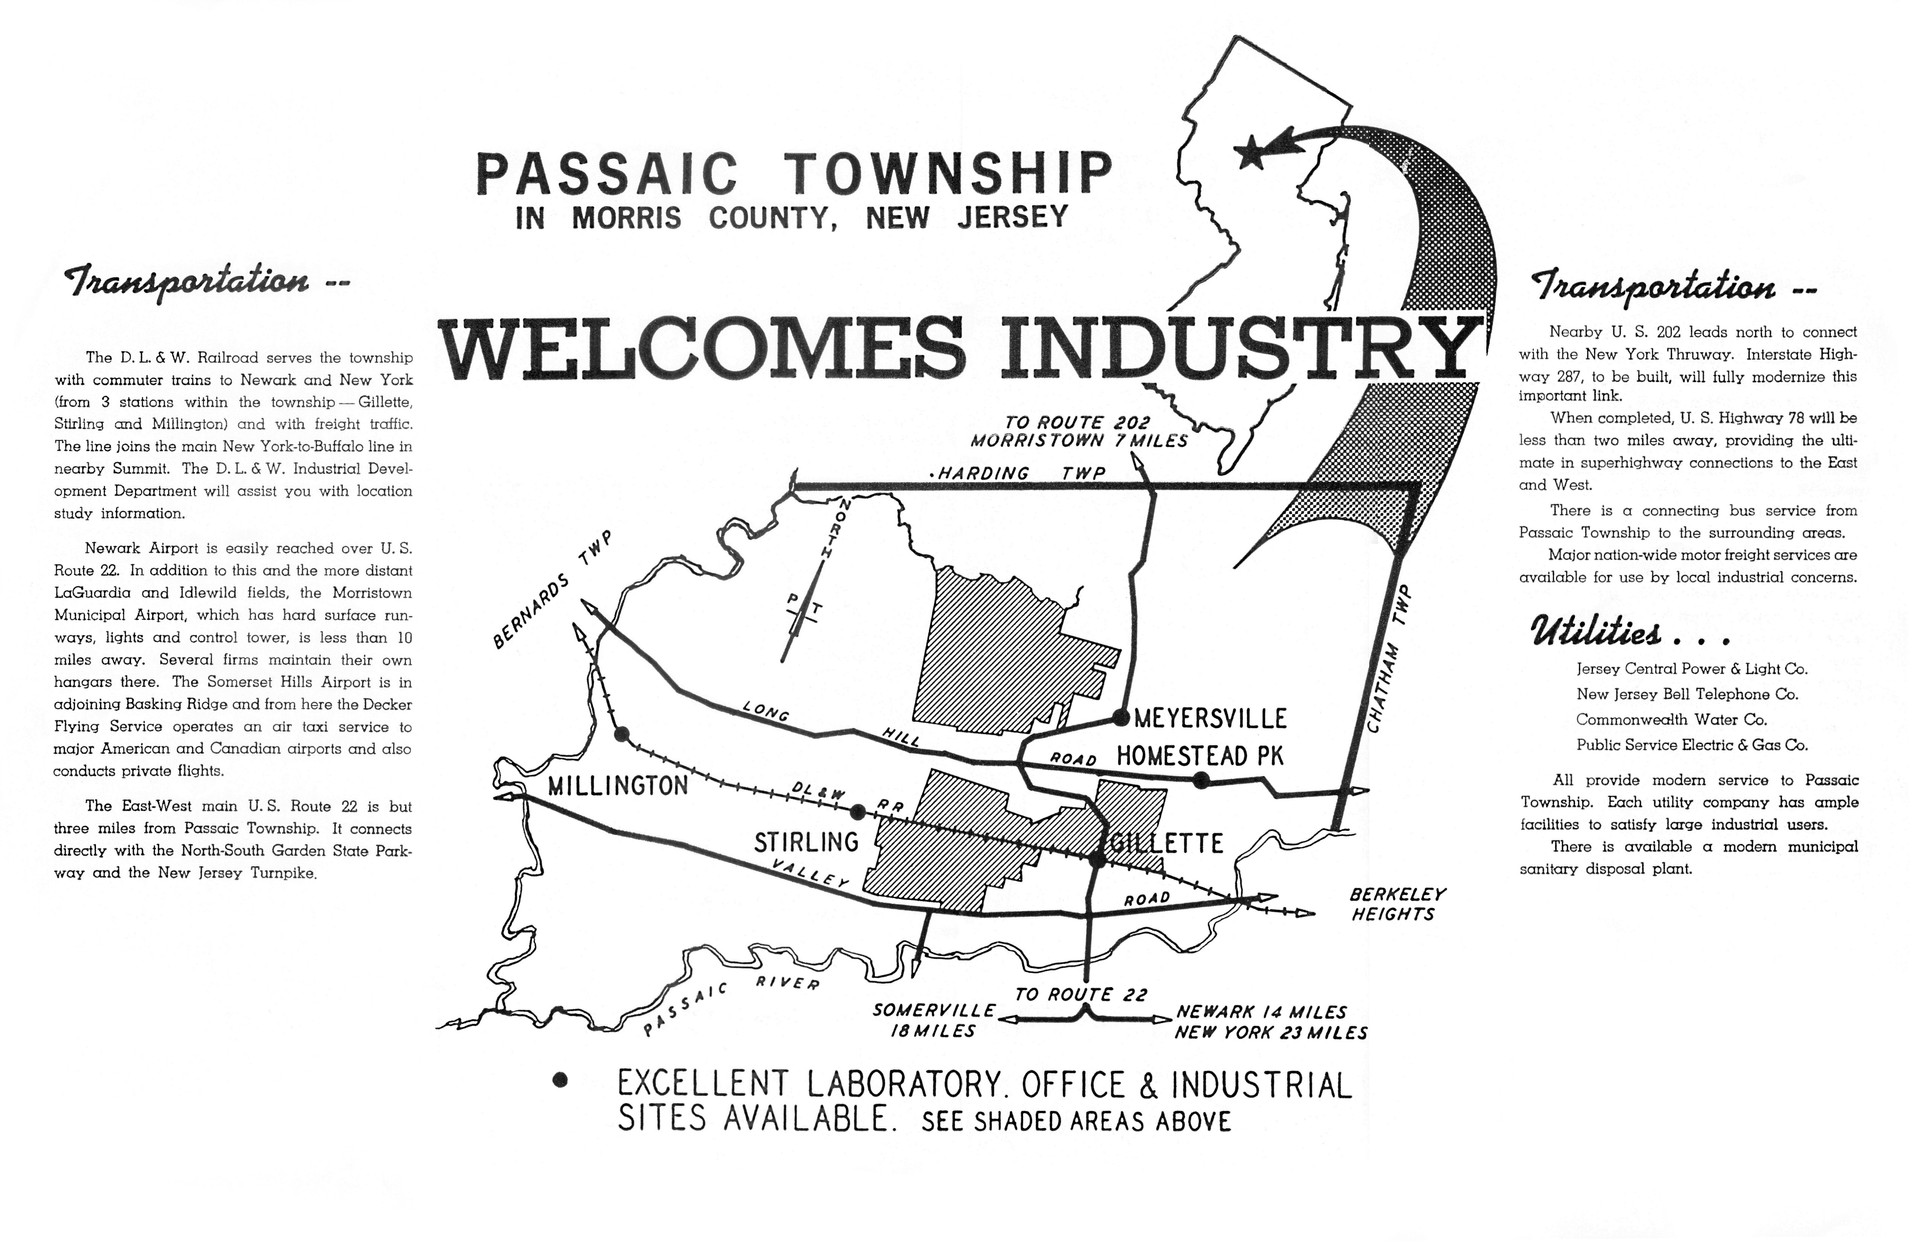 1968 Industry Promotional